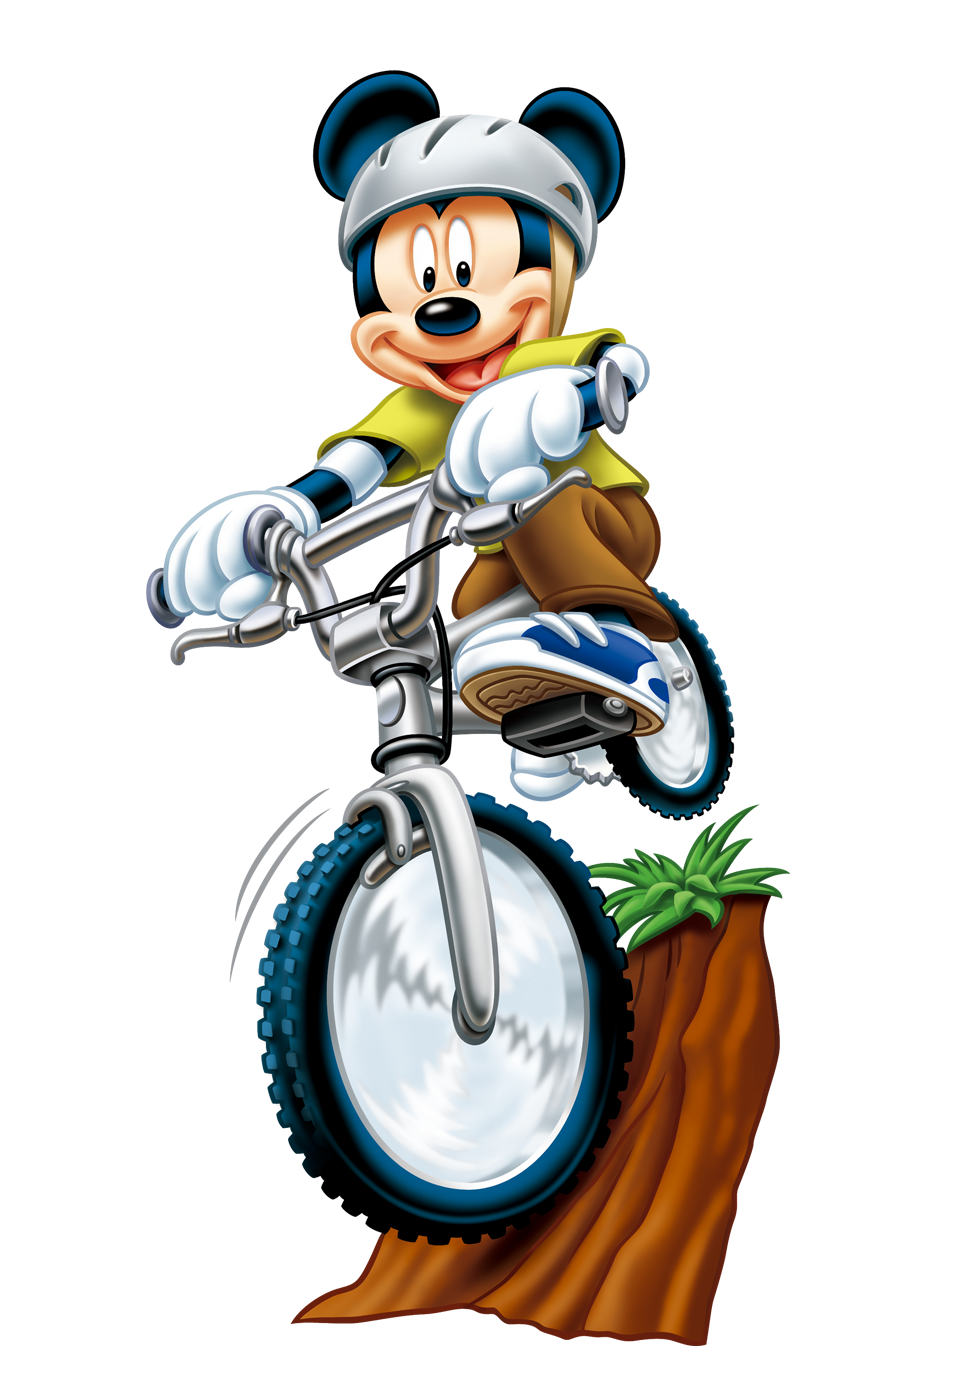 Mickey Mouse Png images and clipart